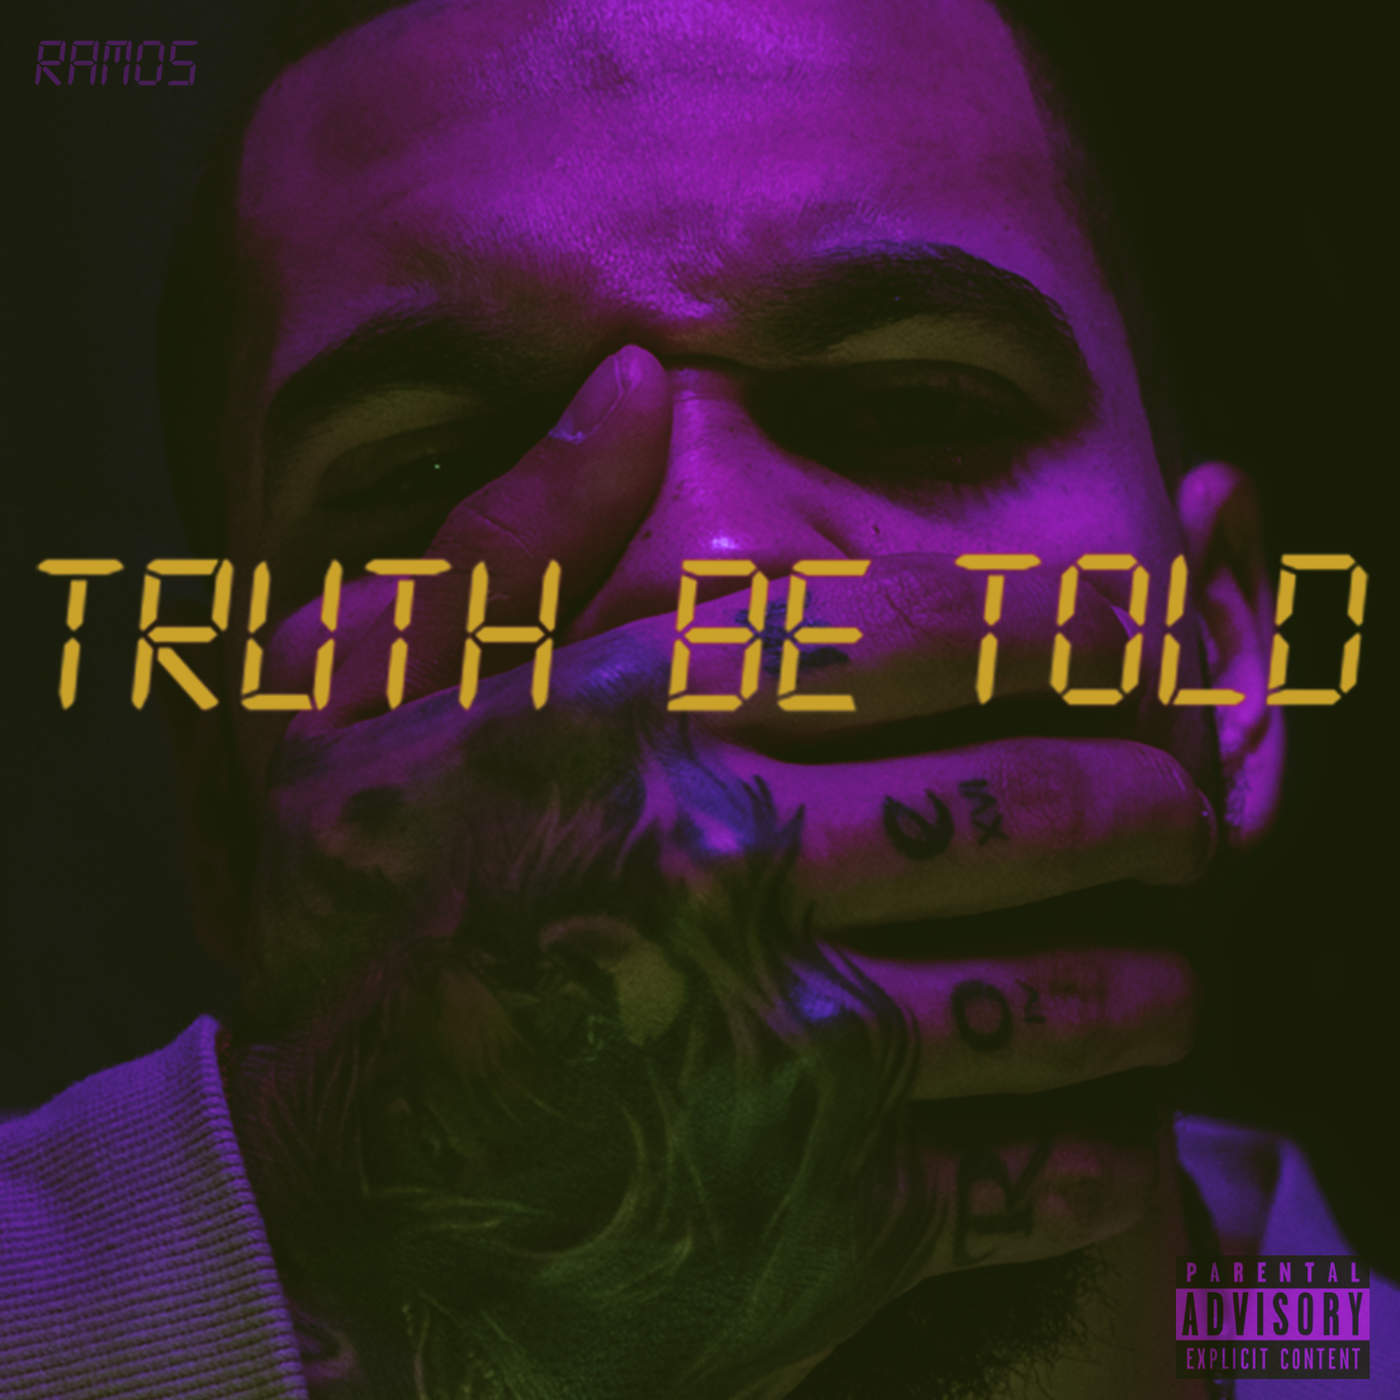 Ramos - Truth Be Told - Single Cover